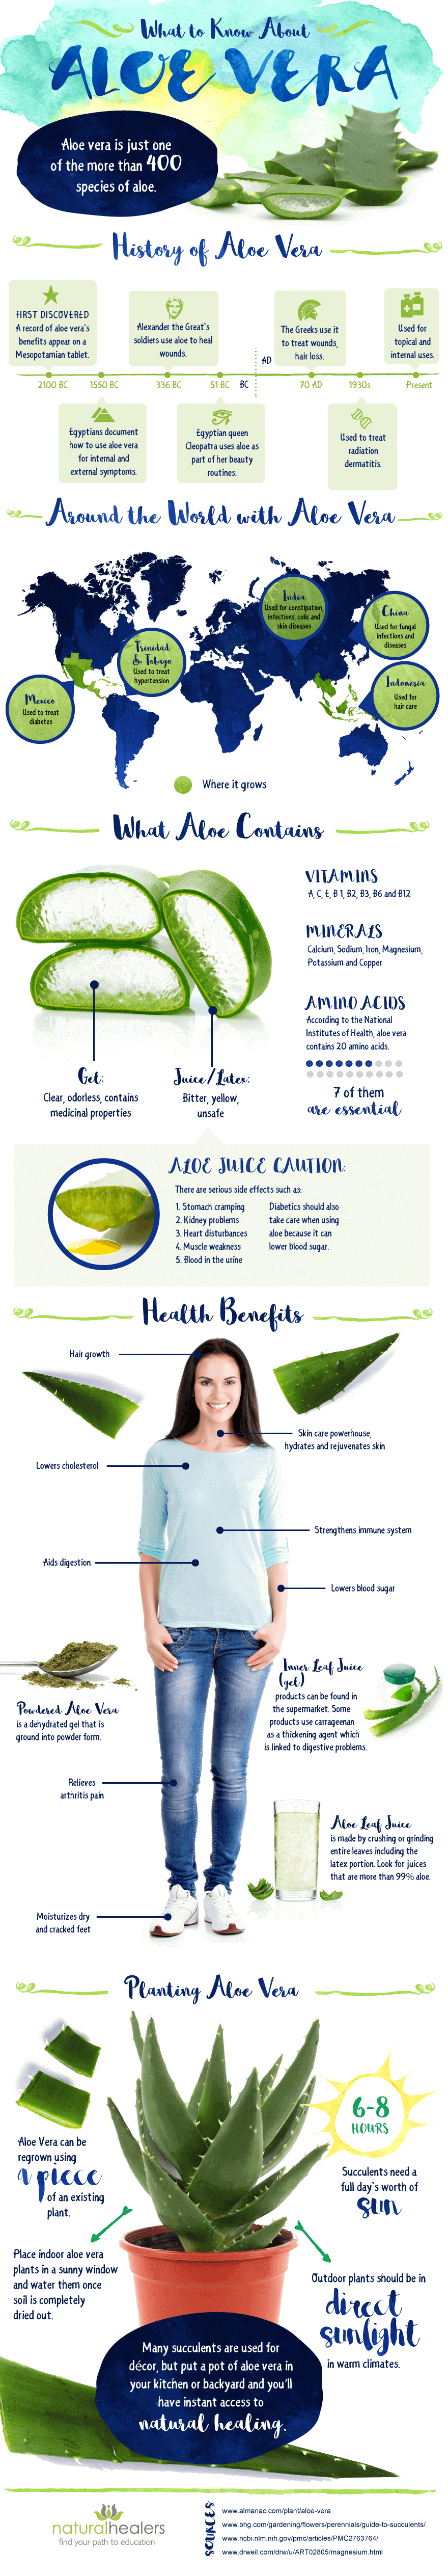 Aloe Vera: Everything You Need To Know About It Infographic